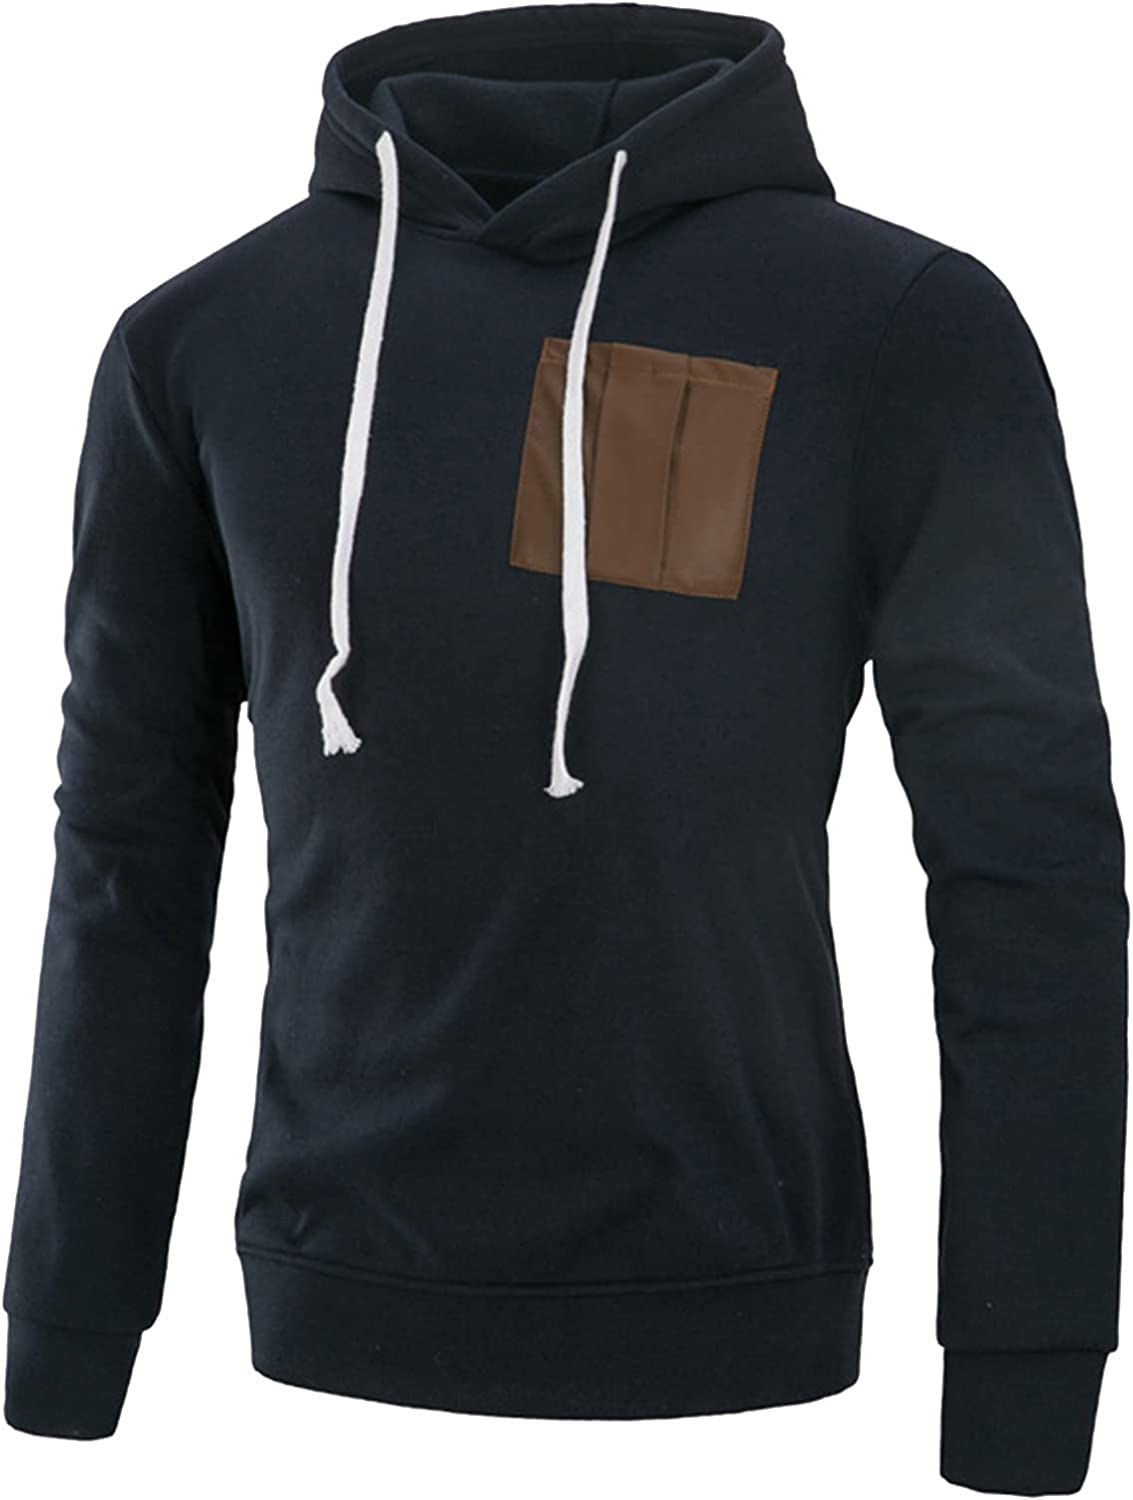 Hoodies for Men Pullover Vintage Aesthetic Hooded Sweatshirt Solid Color Long Sleeve Sweater with Pocket